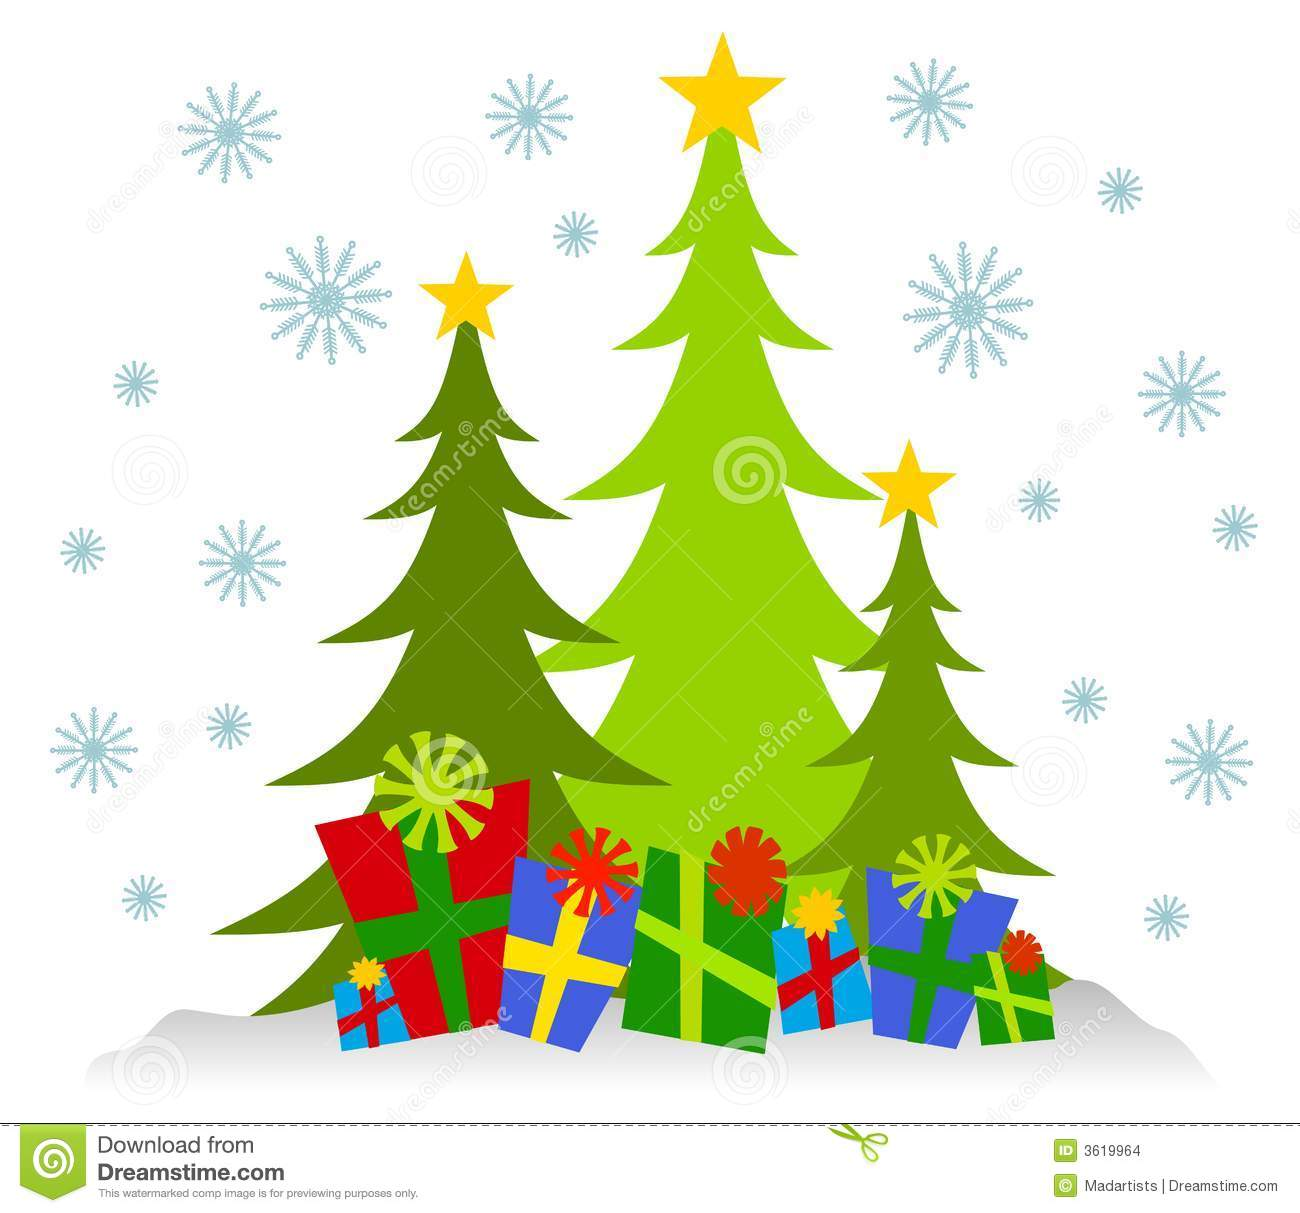 christmas scene clipart at getdrawings com free for personal use rh getdrawings com christmas scene clip art free christmas nativity scene clipart